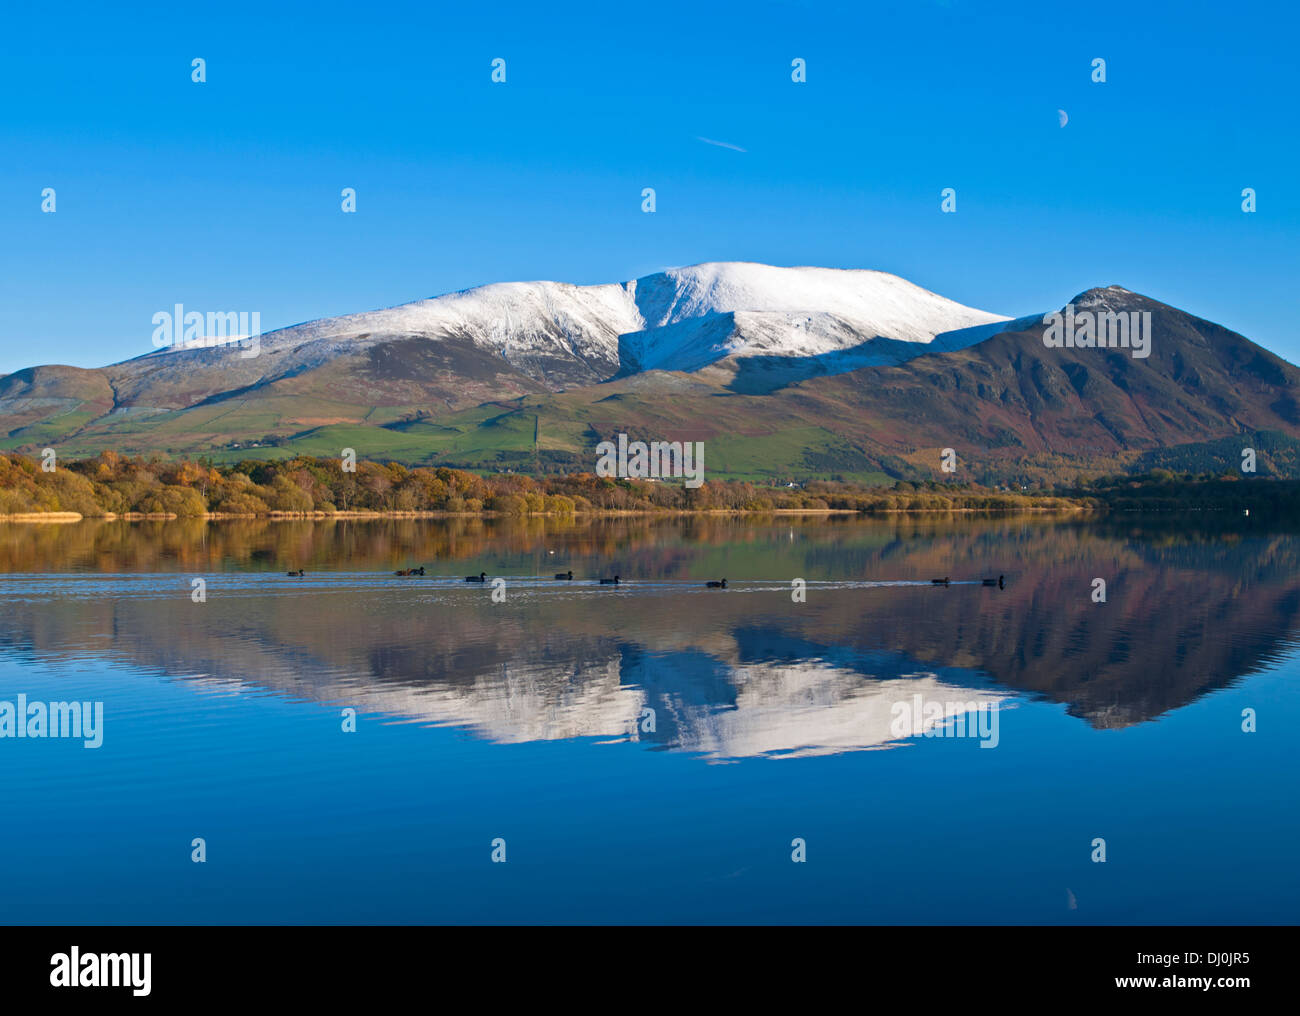 Autumn, Lake District, snow-capped Skiddaw and Ullock Pike are reflected in Lake Bassenthwaite, ducks swim across the calm water - Stock Image